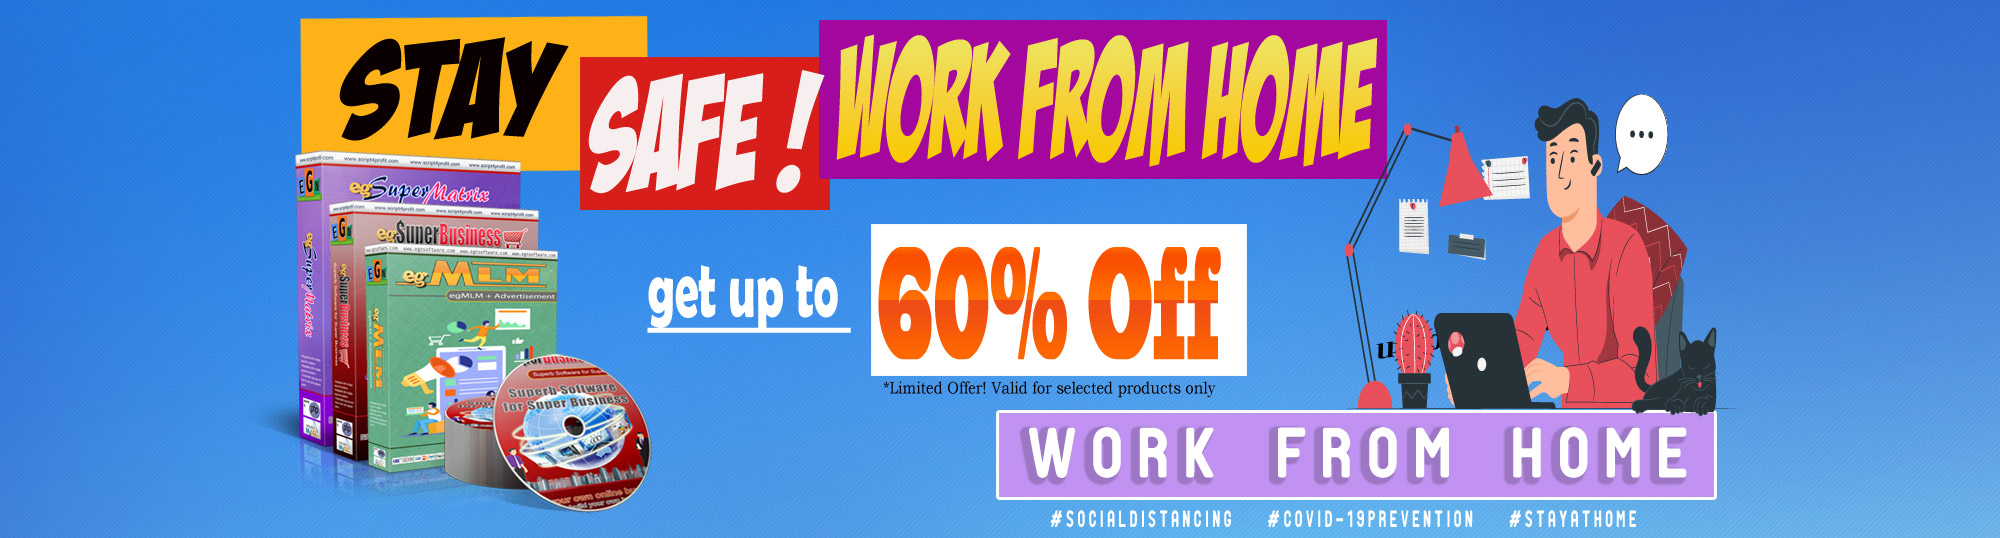 StaySafe! Work From Home, Get 60% OFF